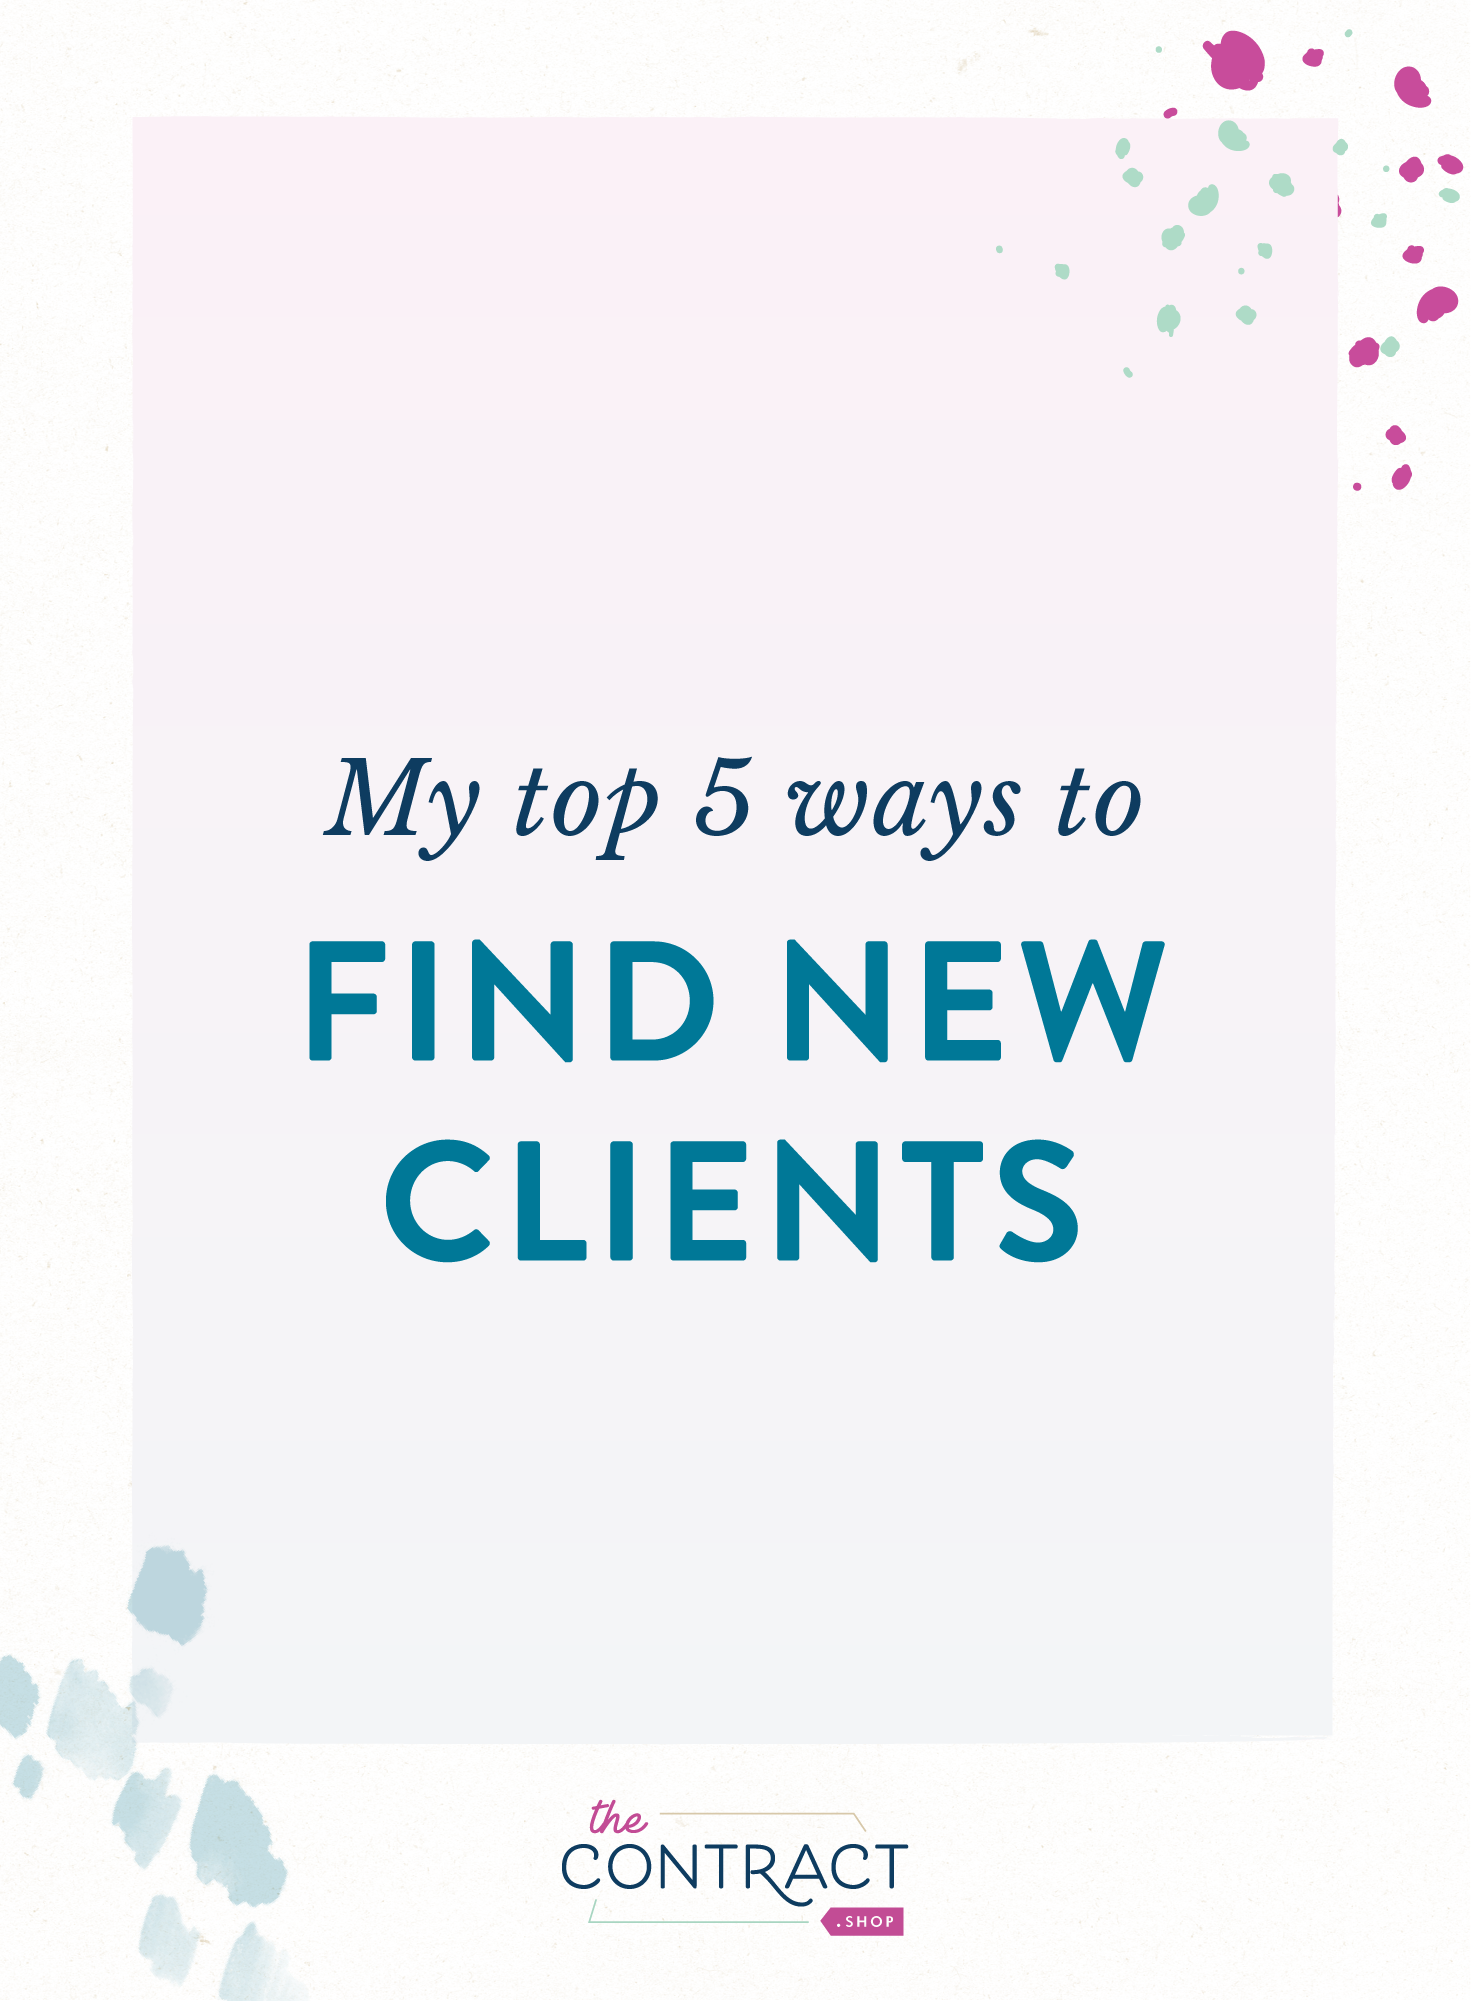 How do you find new clients? #business #clients #growth